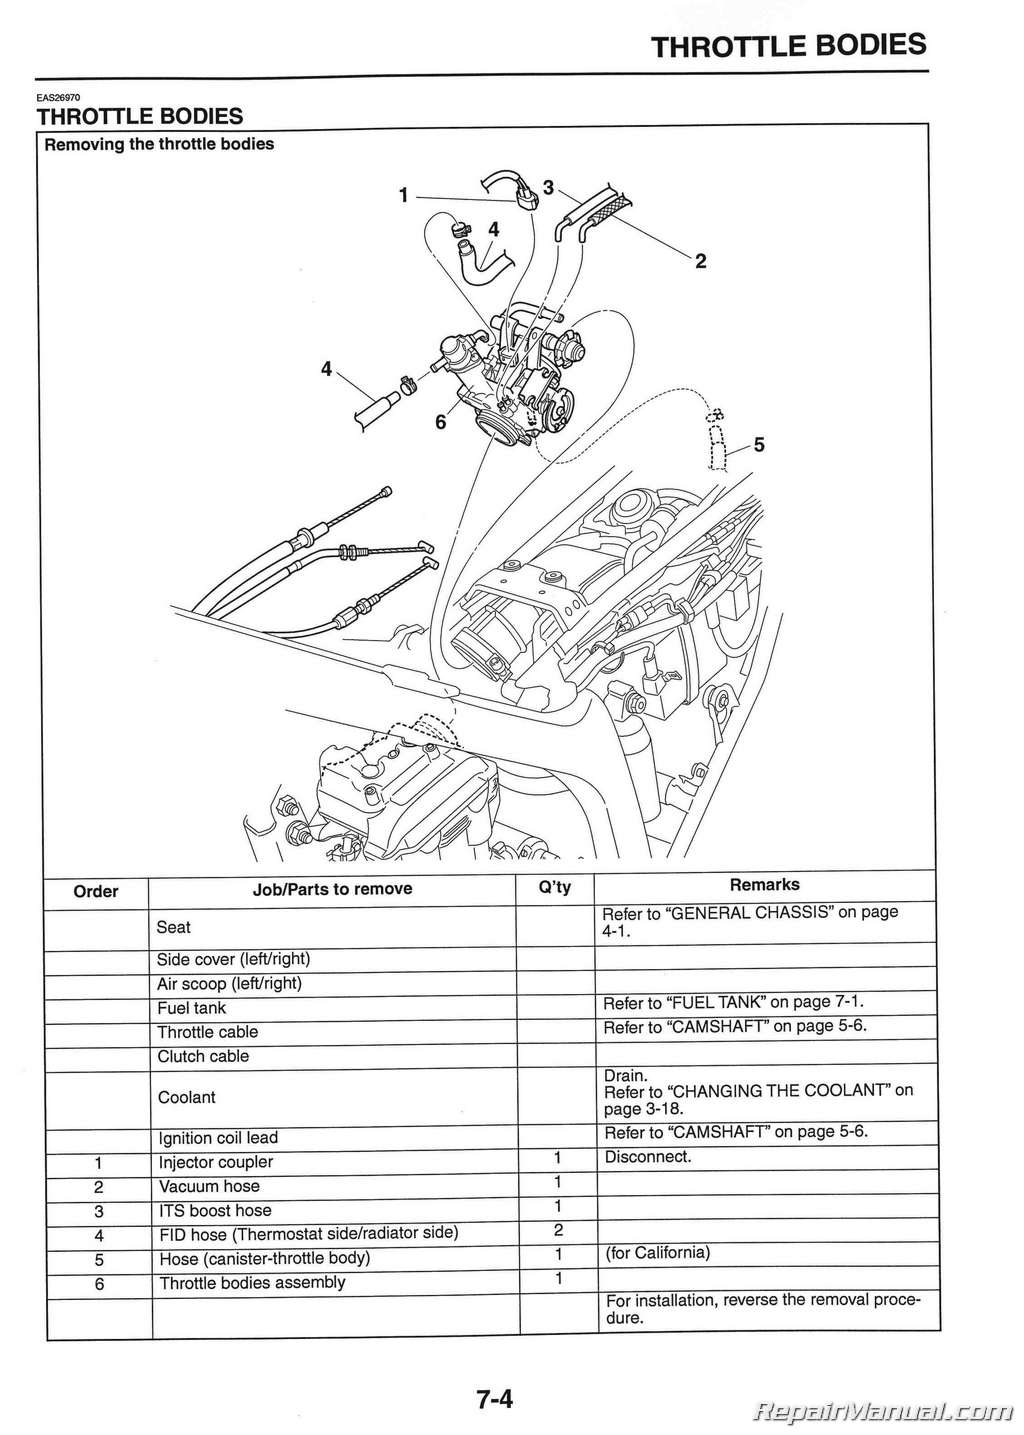 2001 wr250f service manual pdf service manual books library.